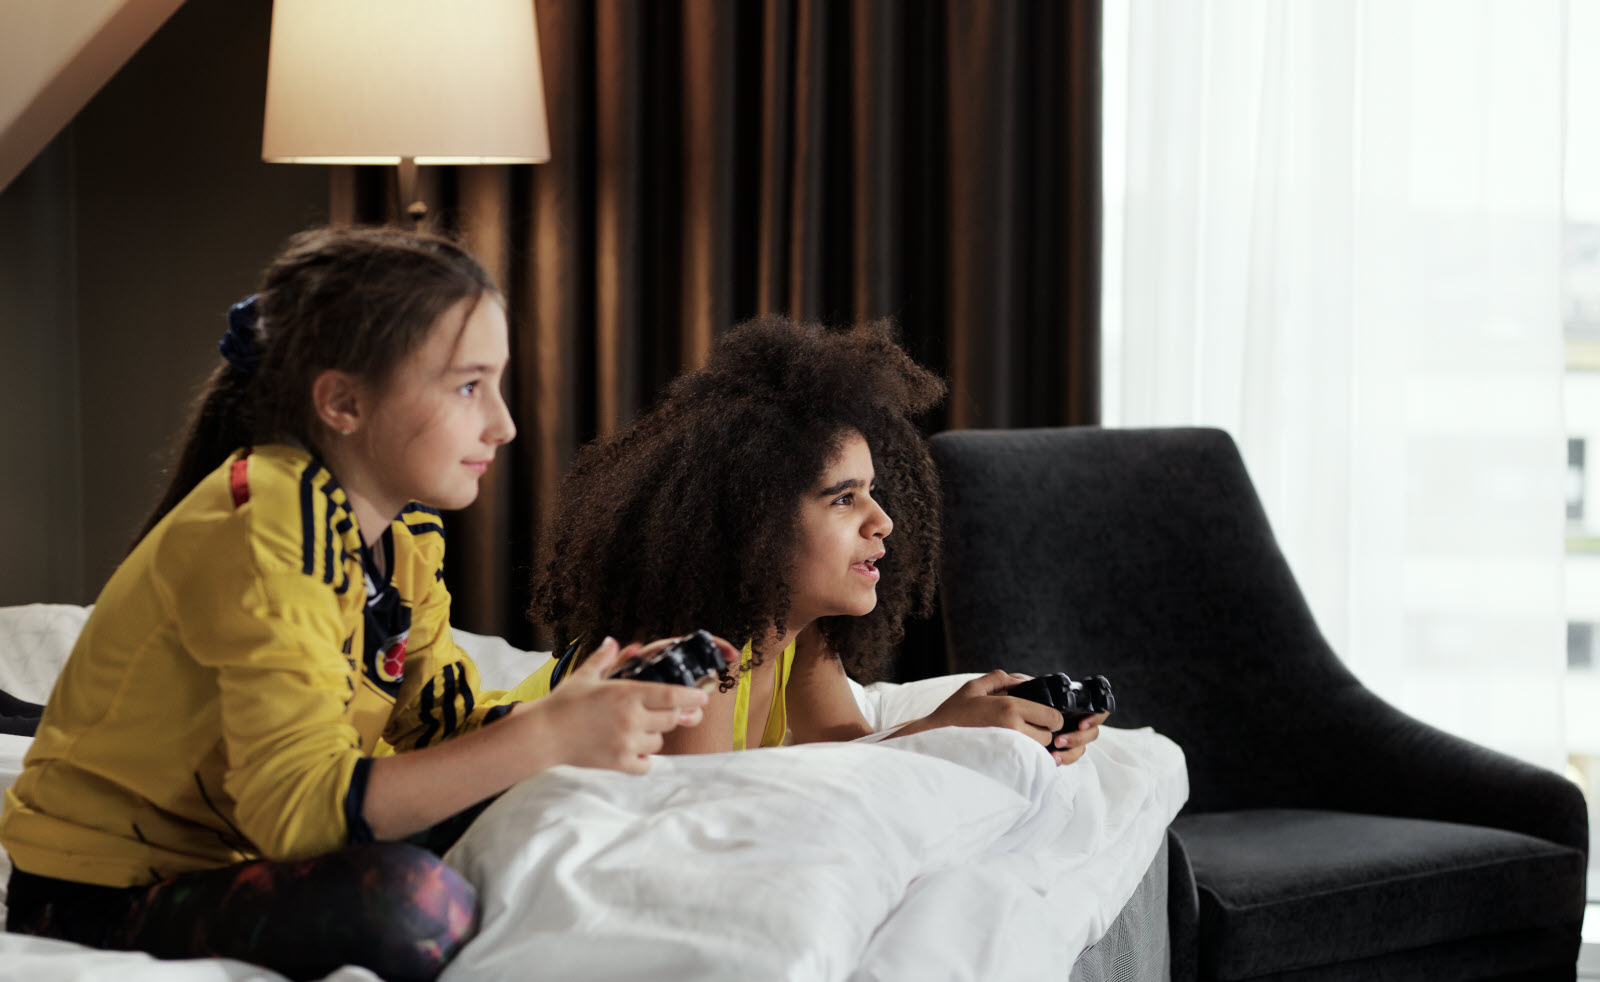 Two sports children playing TV games